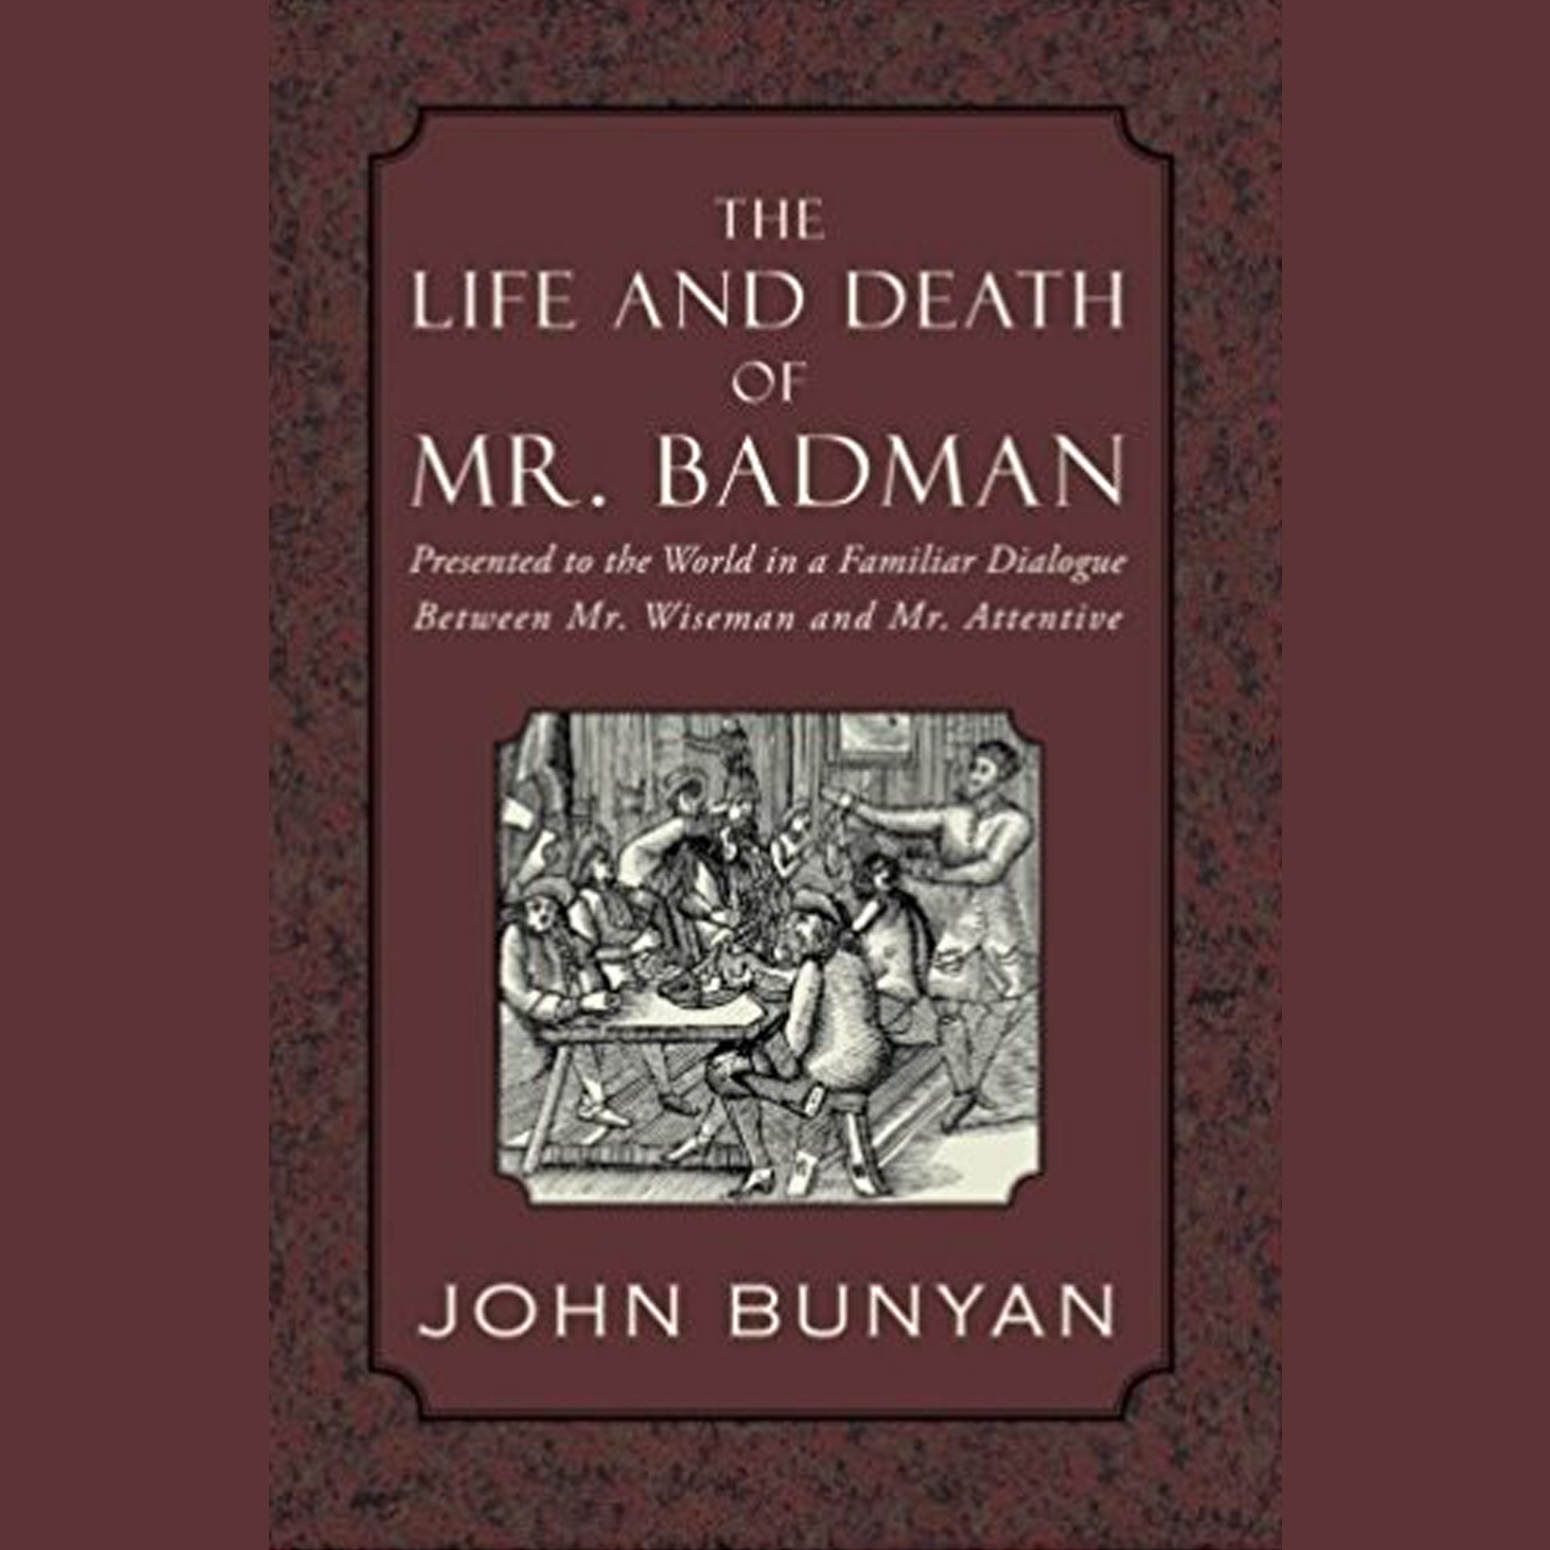 Printable The Life and Death of Mr. Badman  Audiobook Cover Art